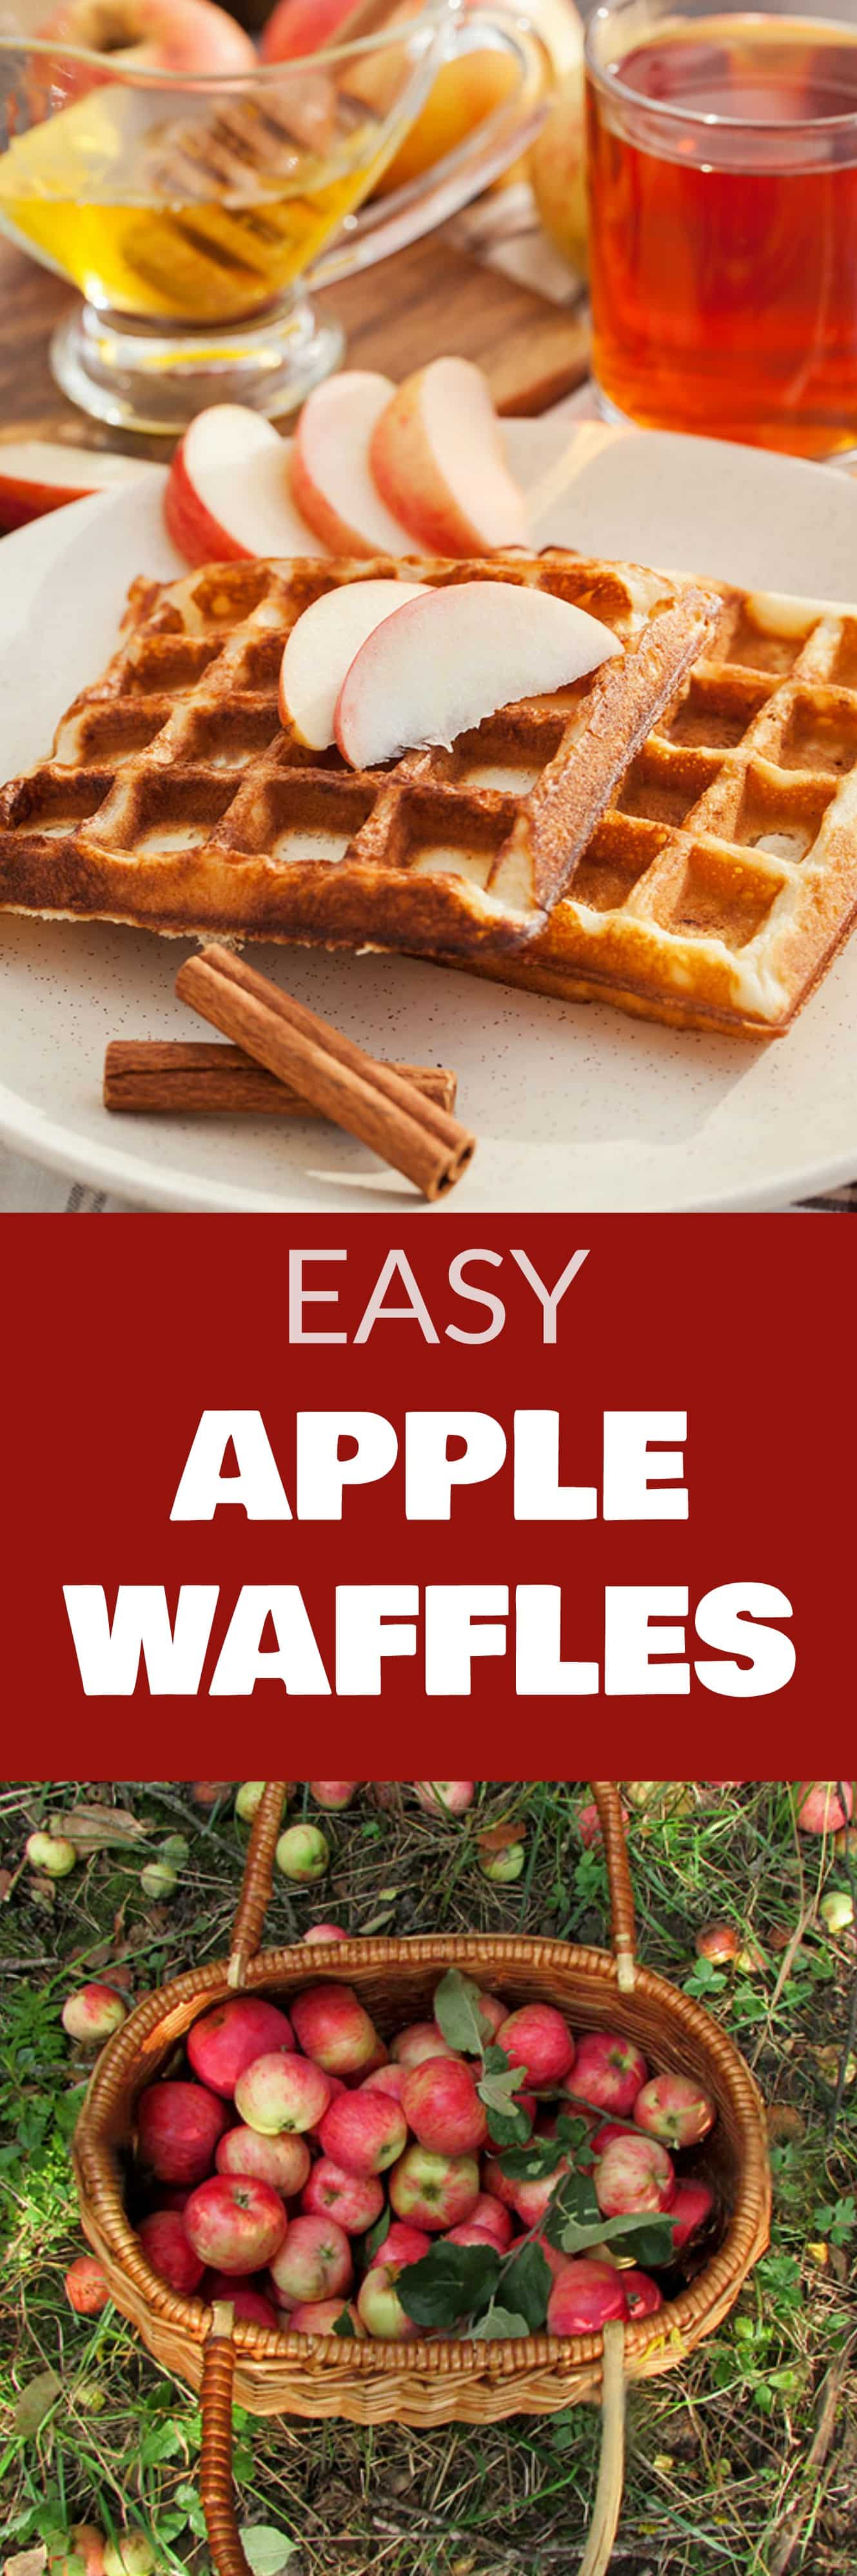 EASY Apple Waffles recipe! This healthy waffle recipe include fresh shredded apples and cinnamon! They are simple to make for a Fall breakfast! Serve with maple syrup on top!